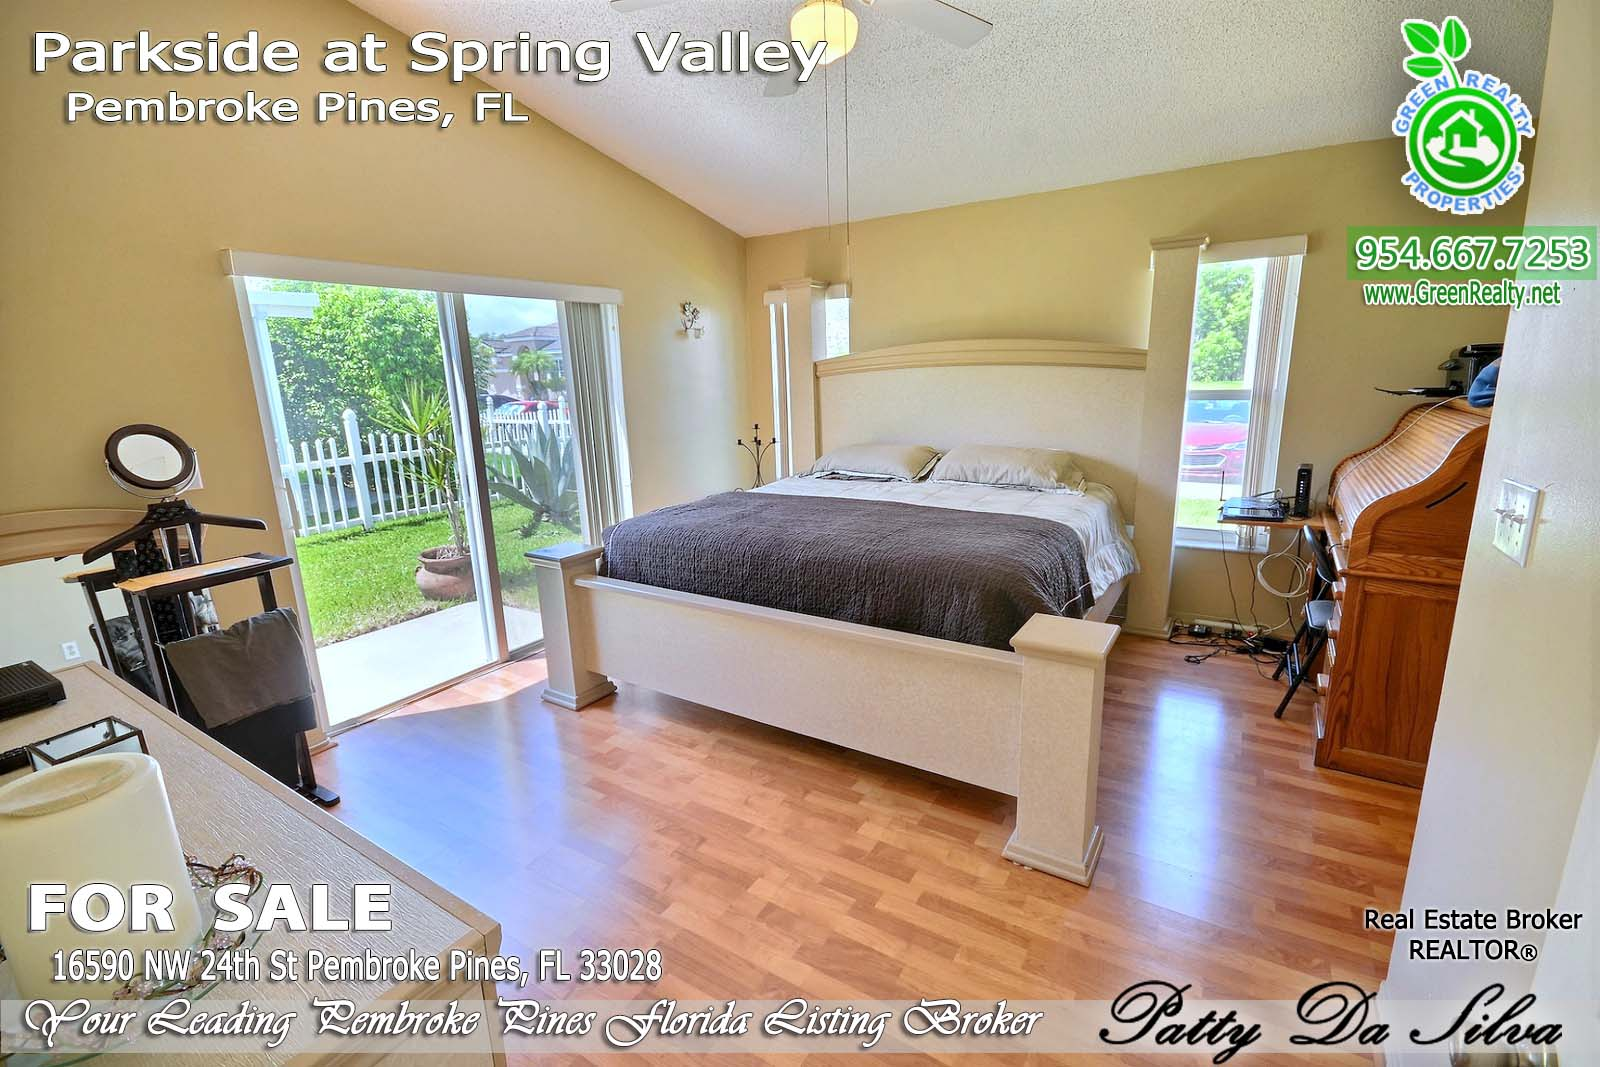 Parkside at Spring Valley Homes For Sale - Pembroke Pines Florida (18)